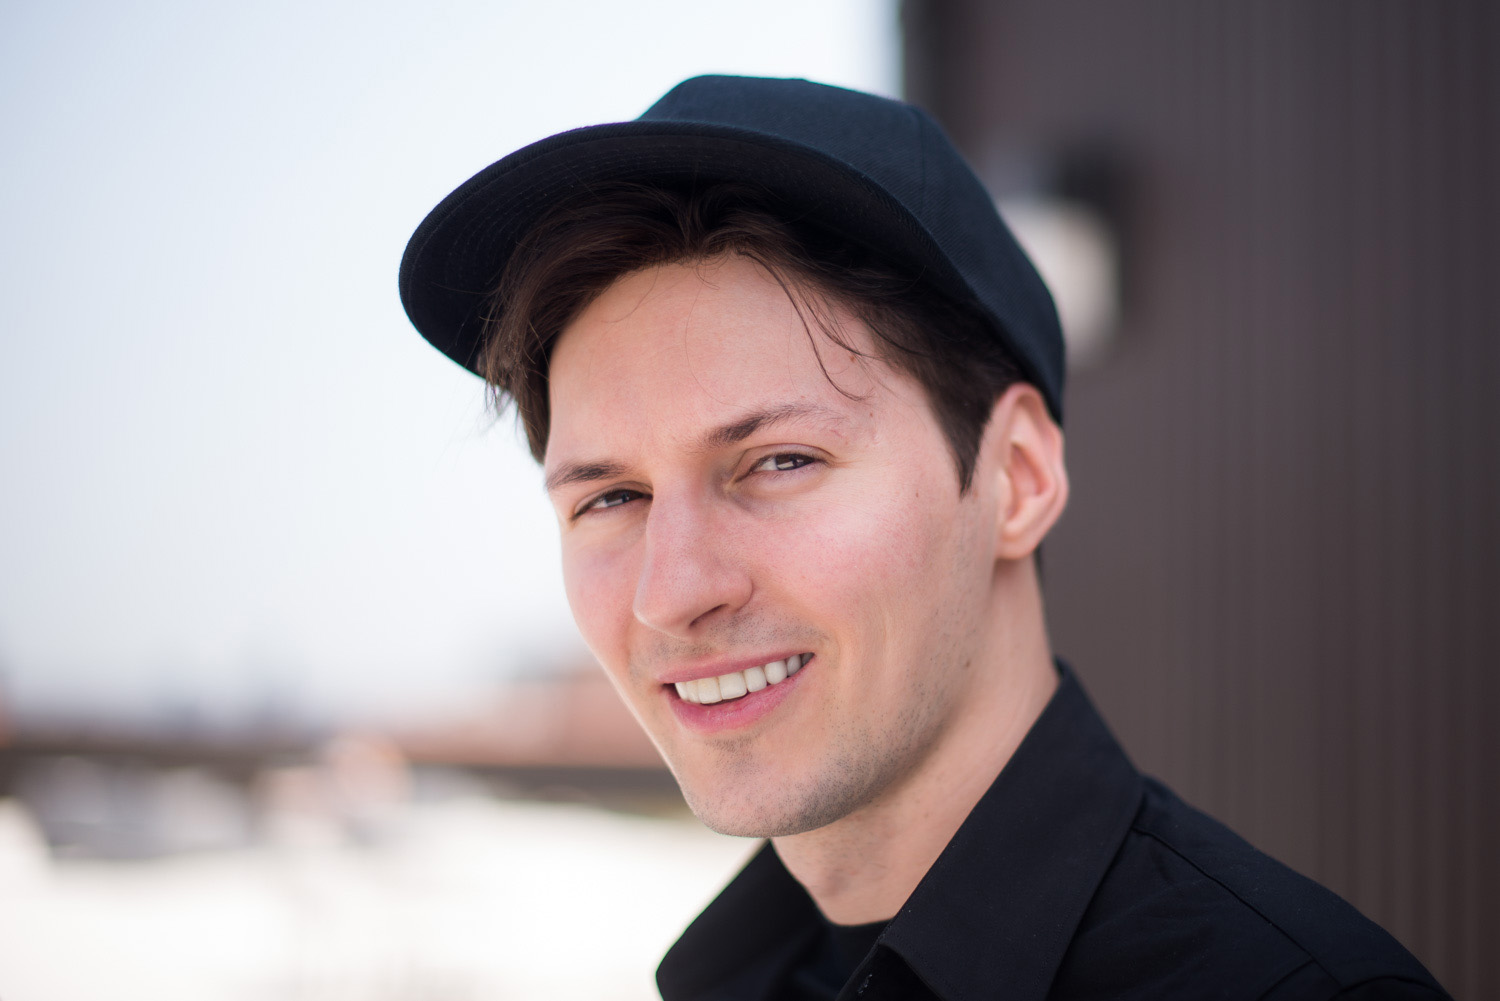 Pavel Durov Net Worth